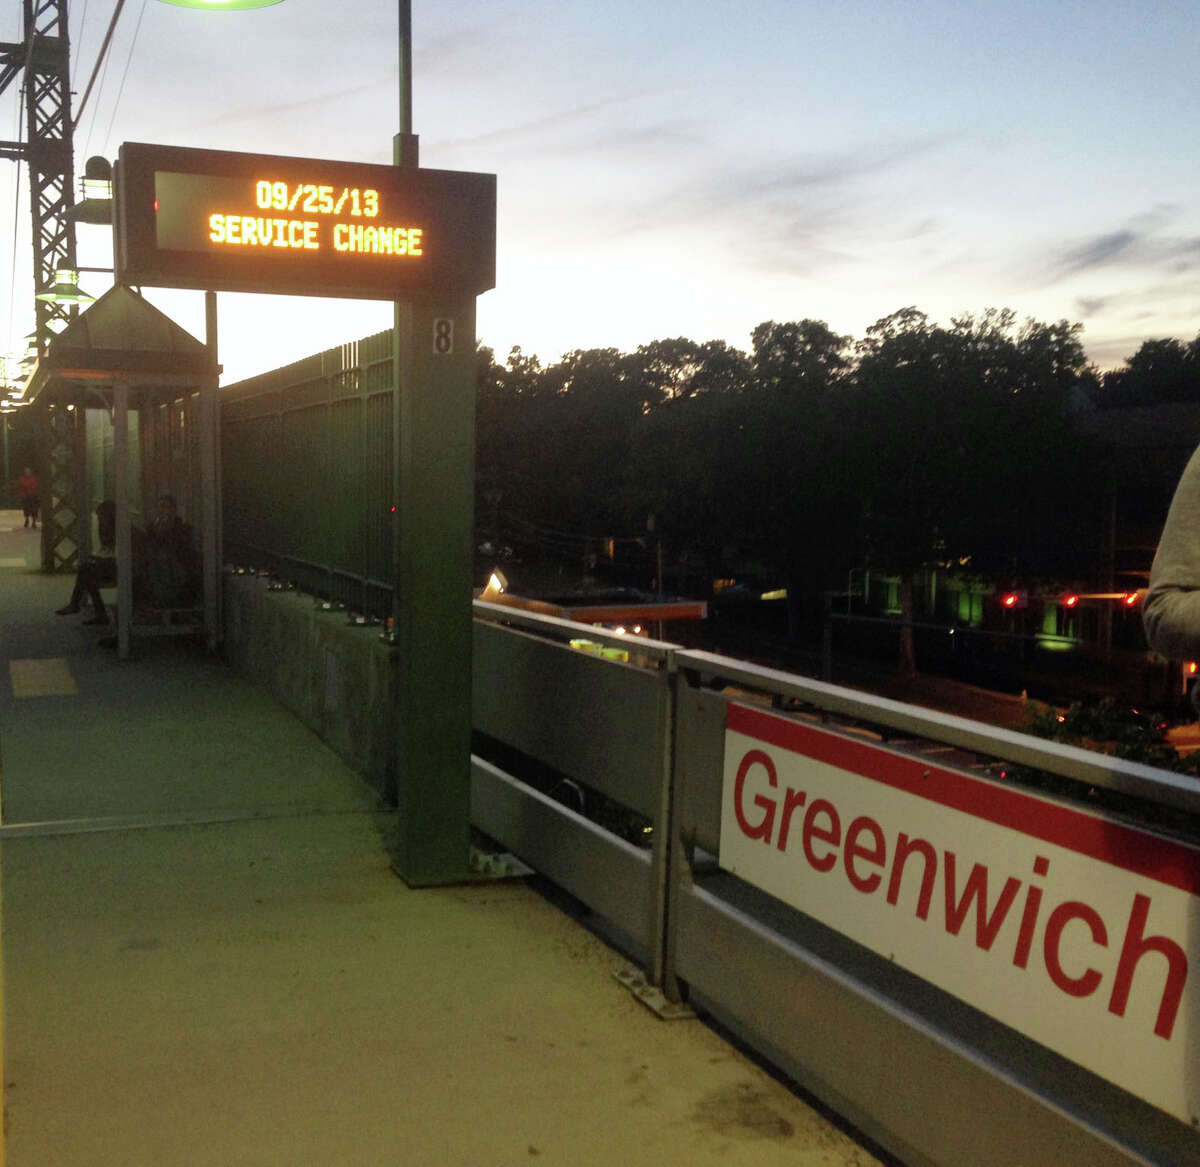 A sign at the Greenwich Train Station notified waiting riders of trouble Wednesday evening.